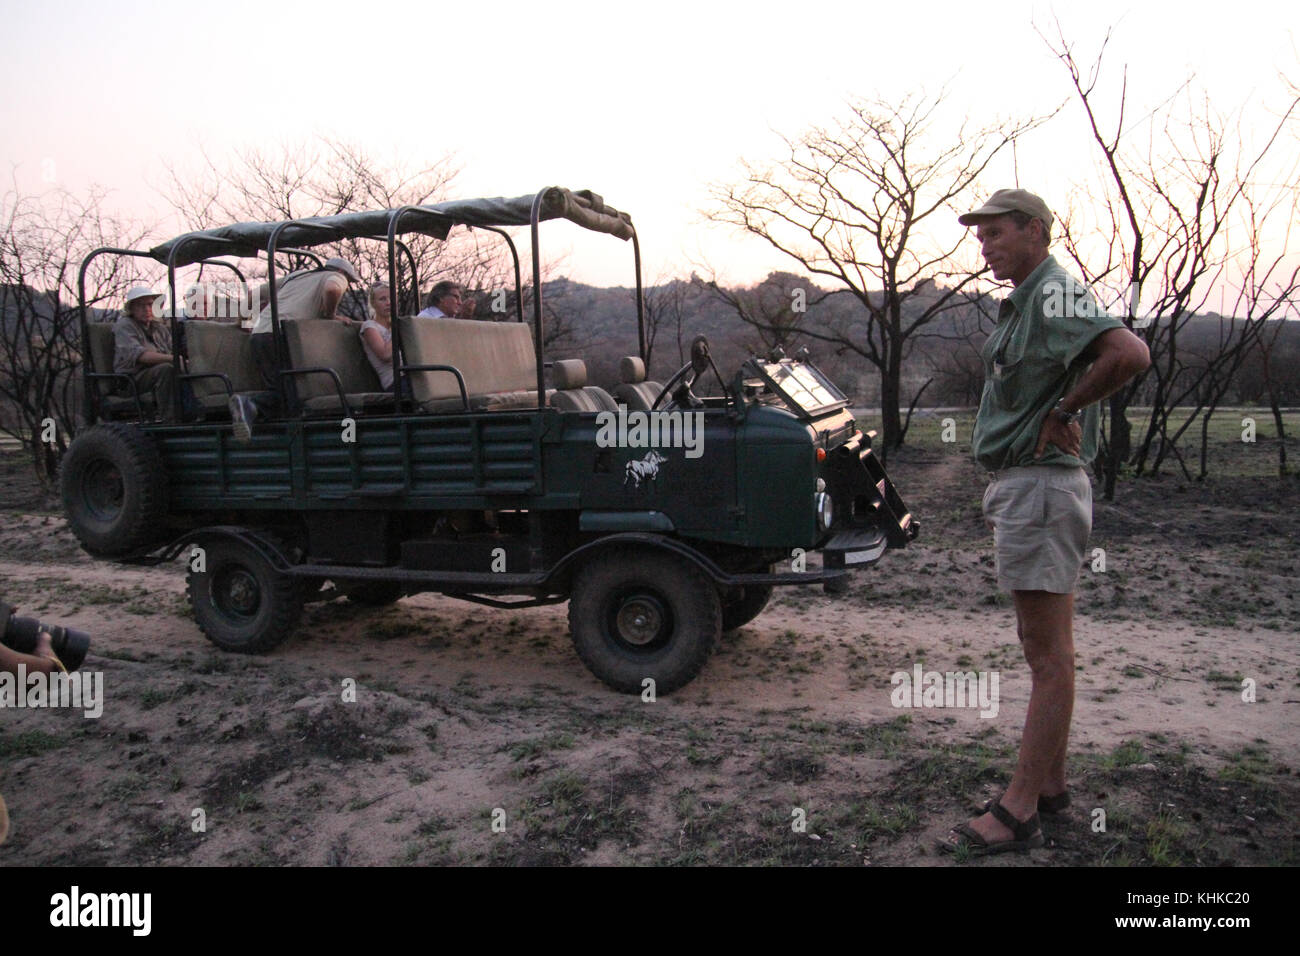 Matobo Park, Zimbabwe - 17 October 2011: Game guide Ian Harmer stands by his landrover during the white rhino tracking - Stock Image